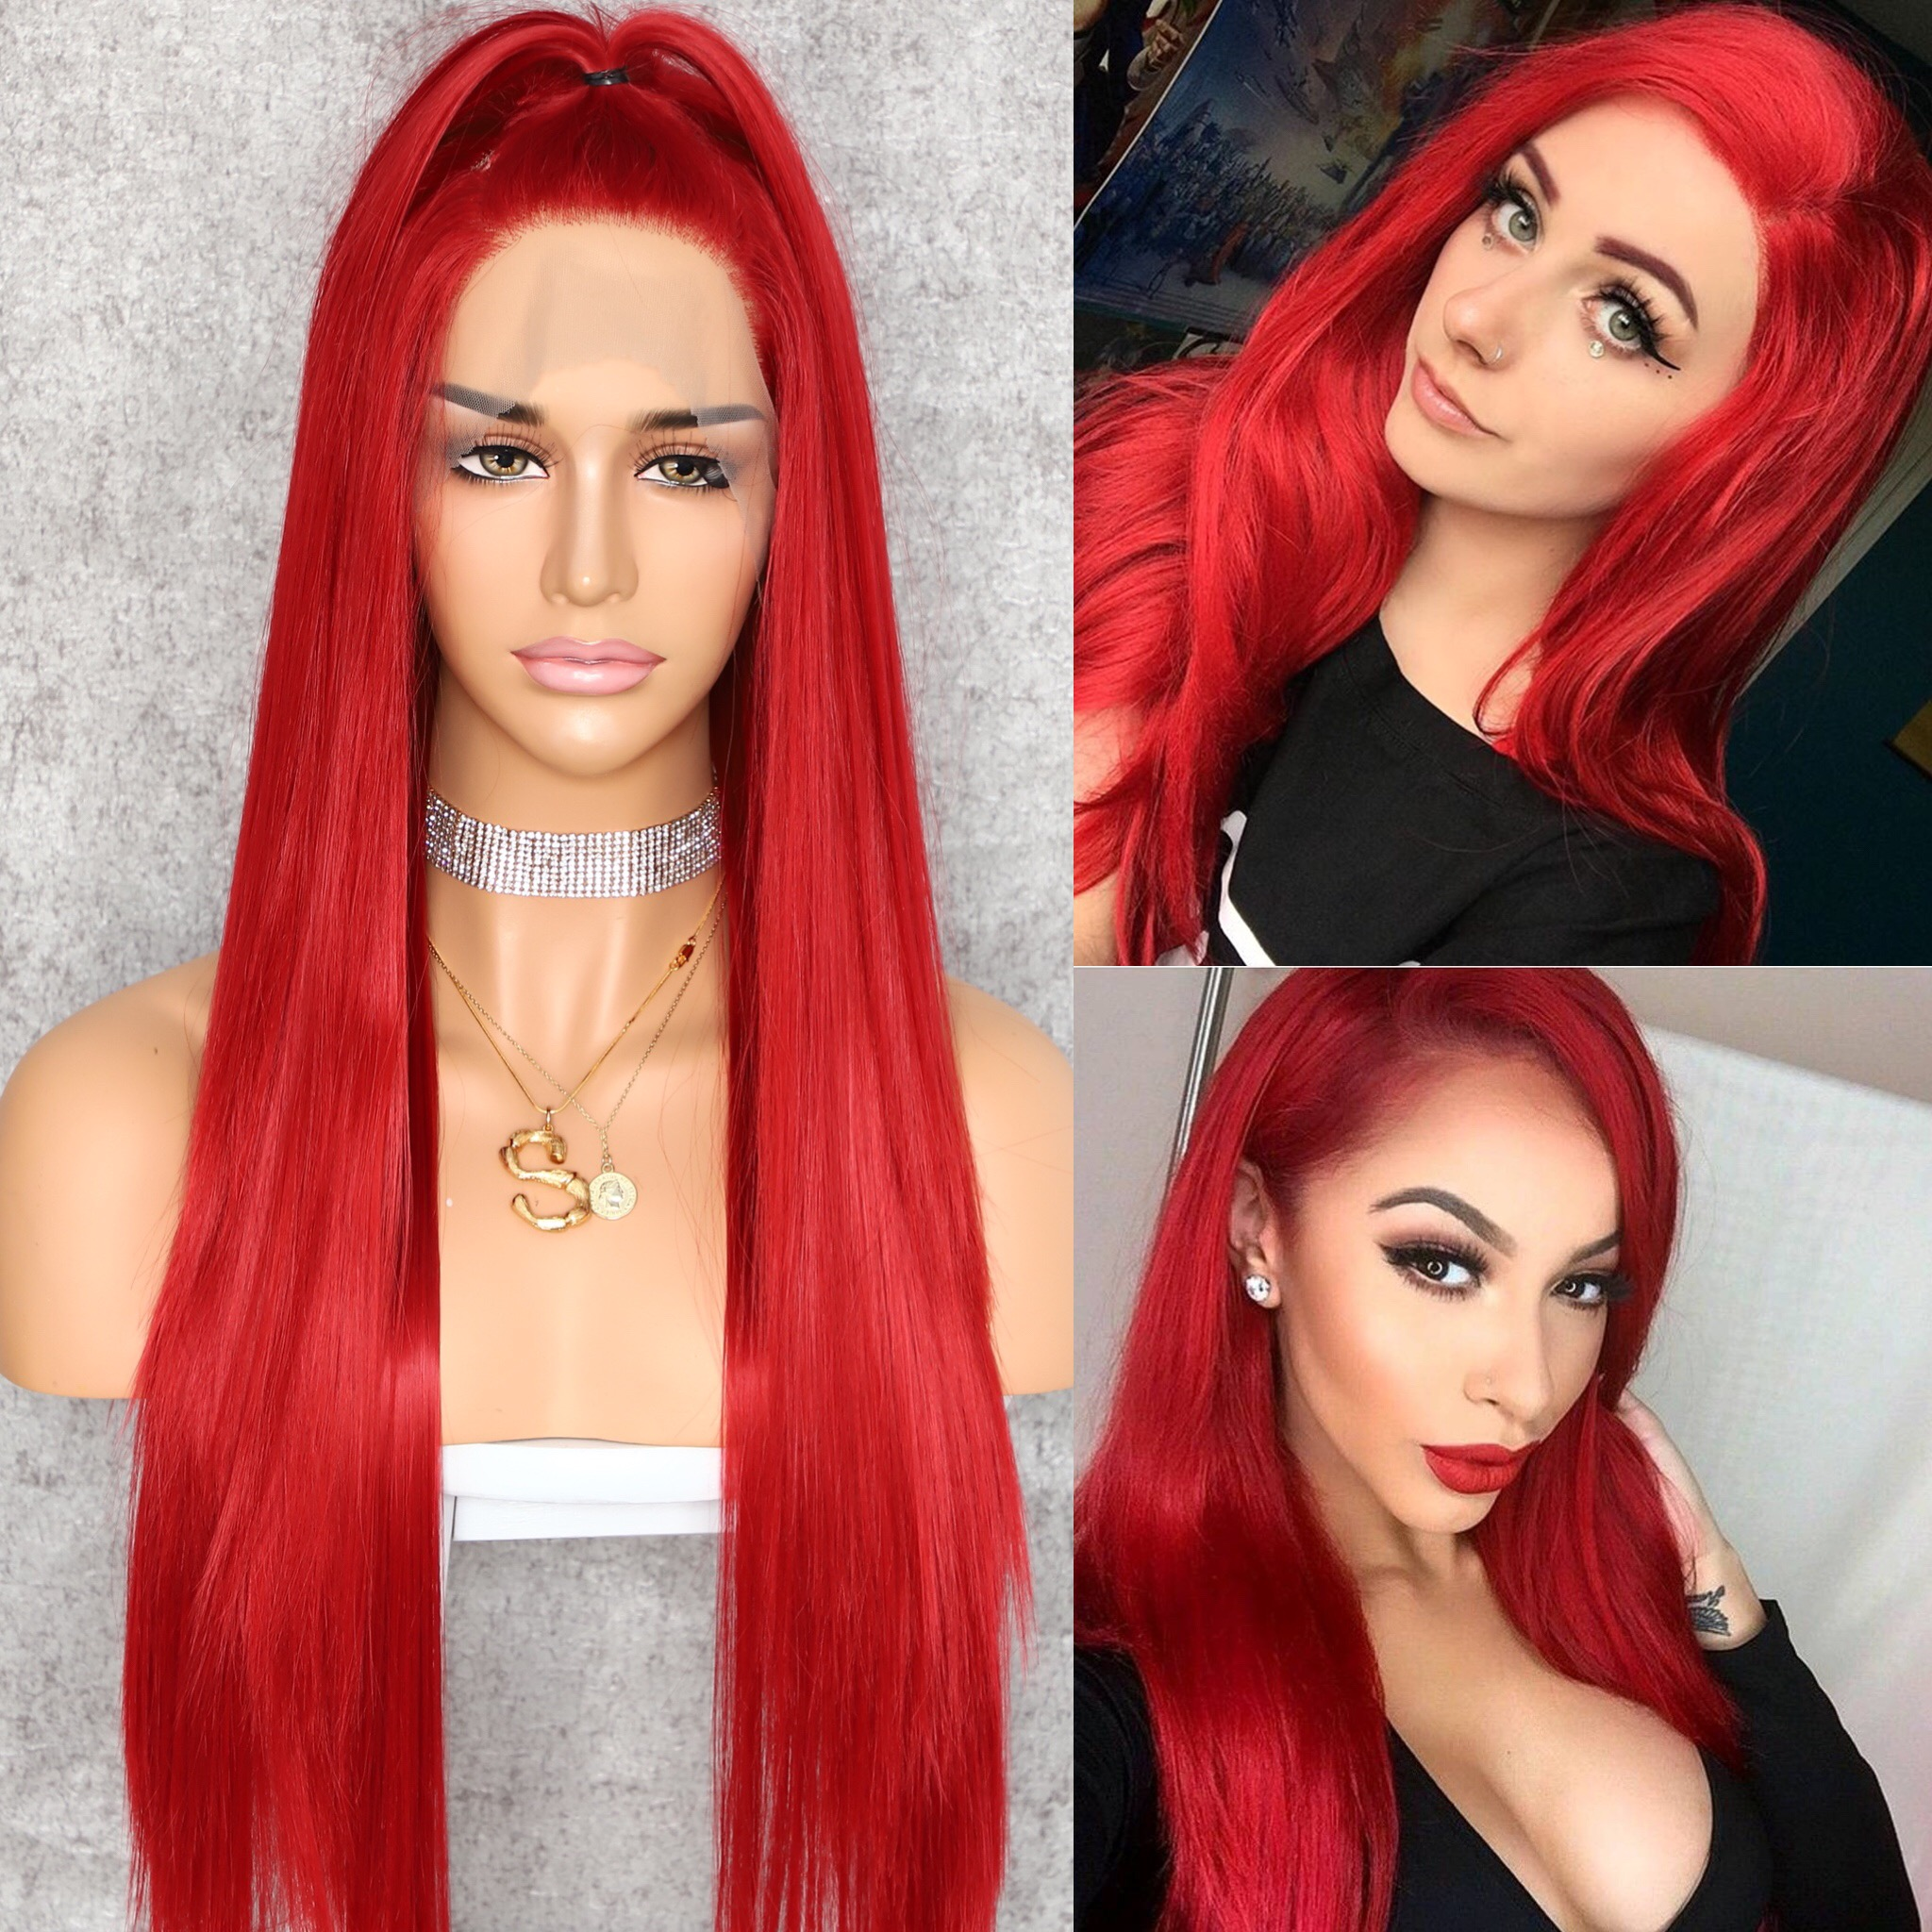 Beautytown Wig Celebrity Lace-Front Cosplay Orange Heat-Resistant Wedding-Party Girl title=